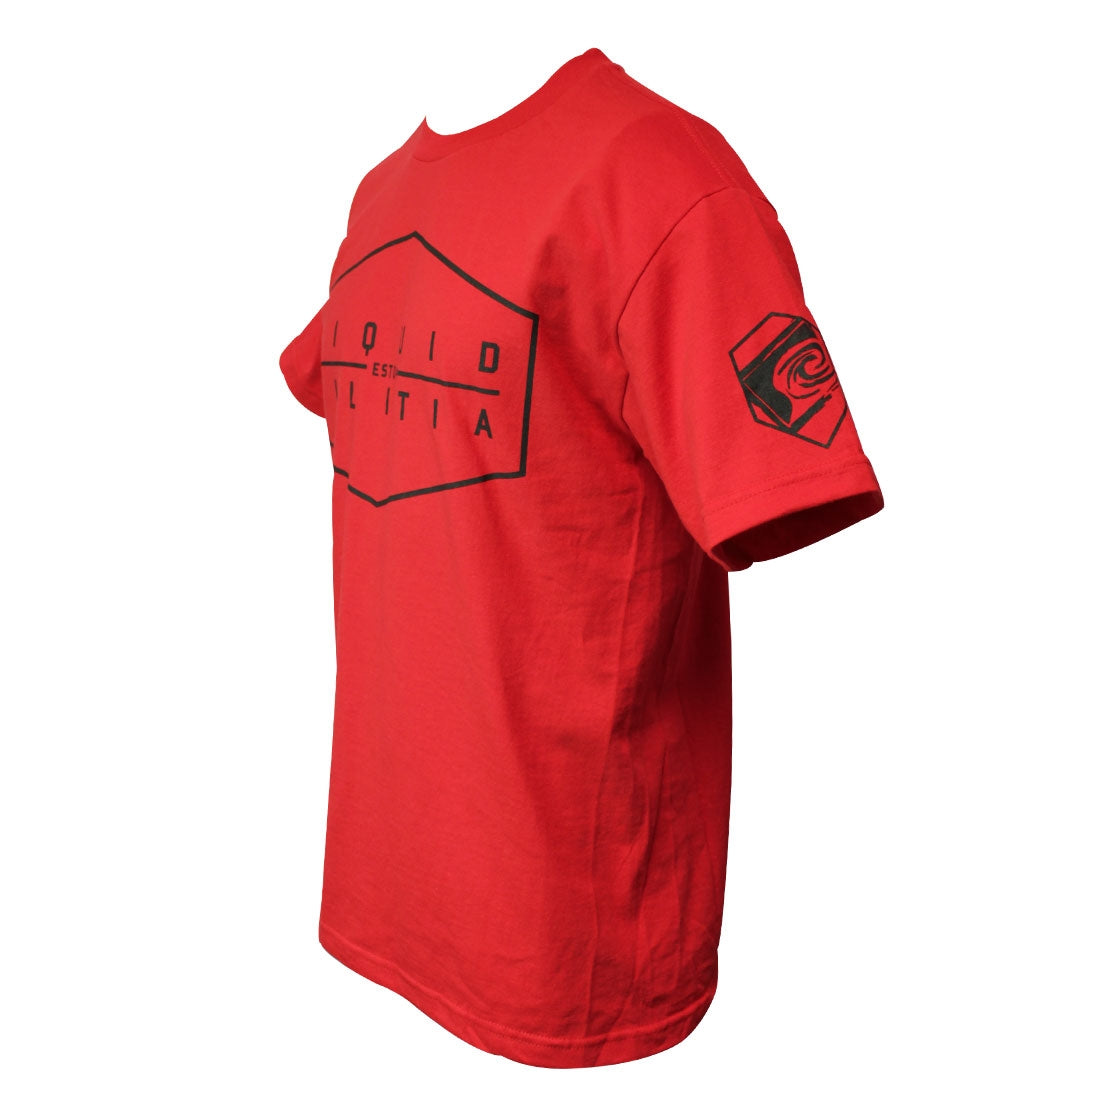 Proof mens standard tee in Red 3/4 view